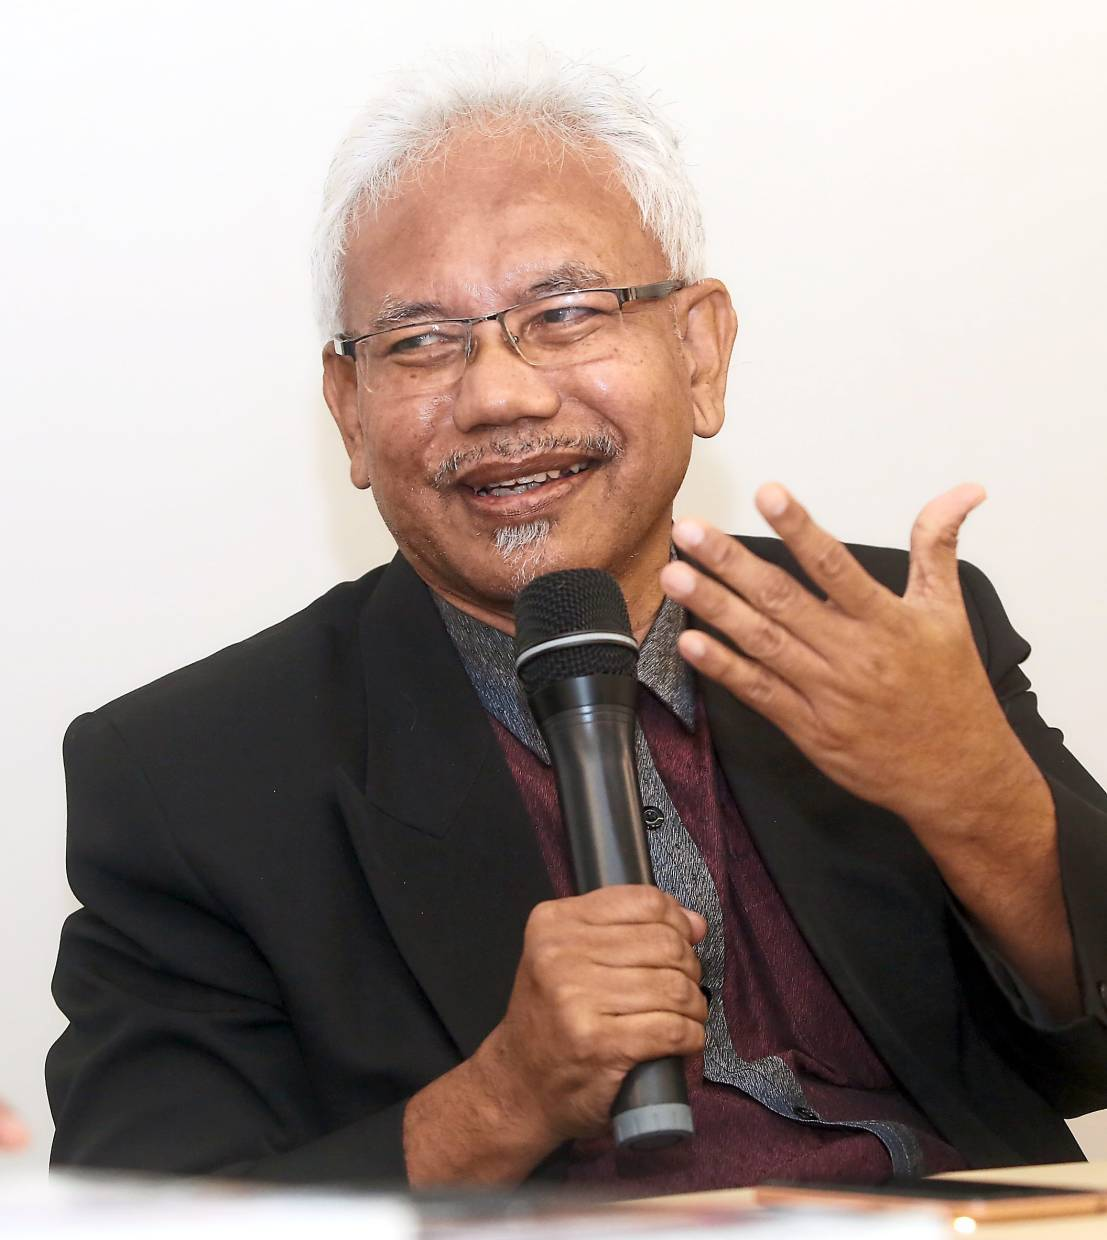 Mohd Tajuddin says the failure to teach students about the nation's shared history, prosperity and spirituality, is a problem that must be addressed.